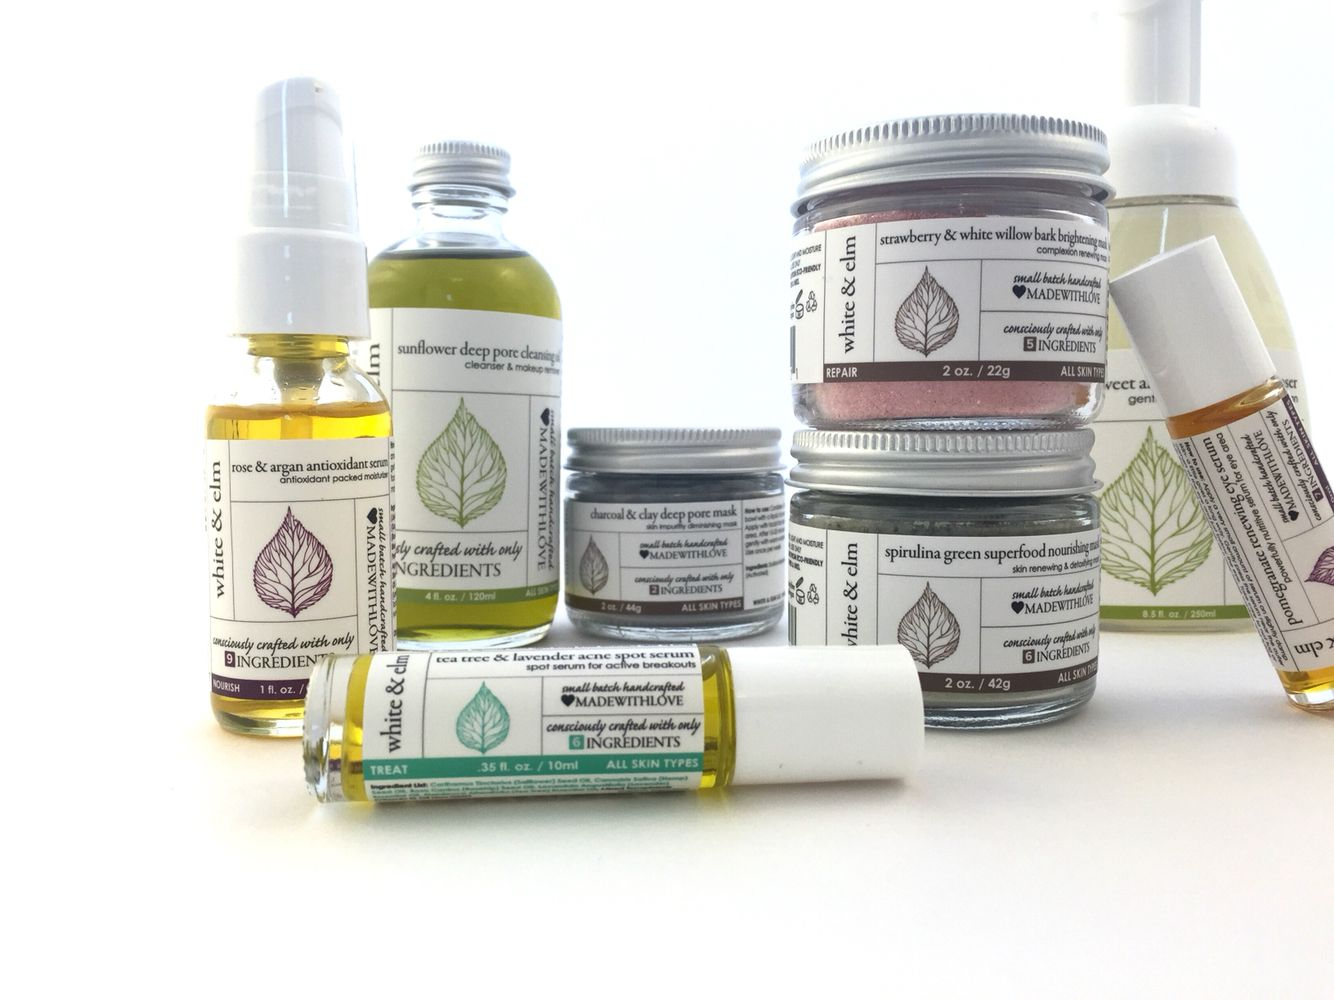 White & Elm facial products